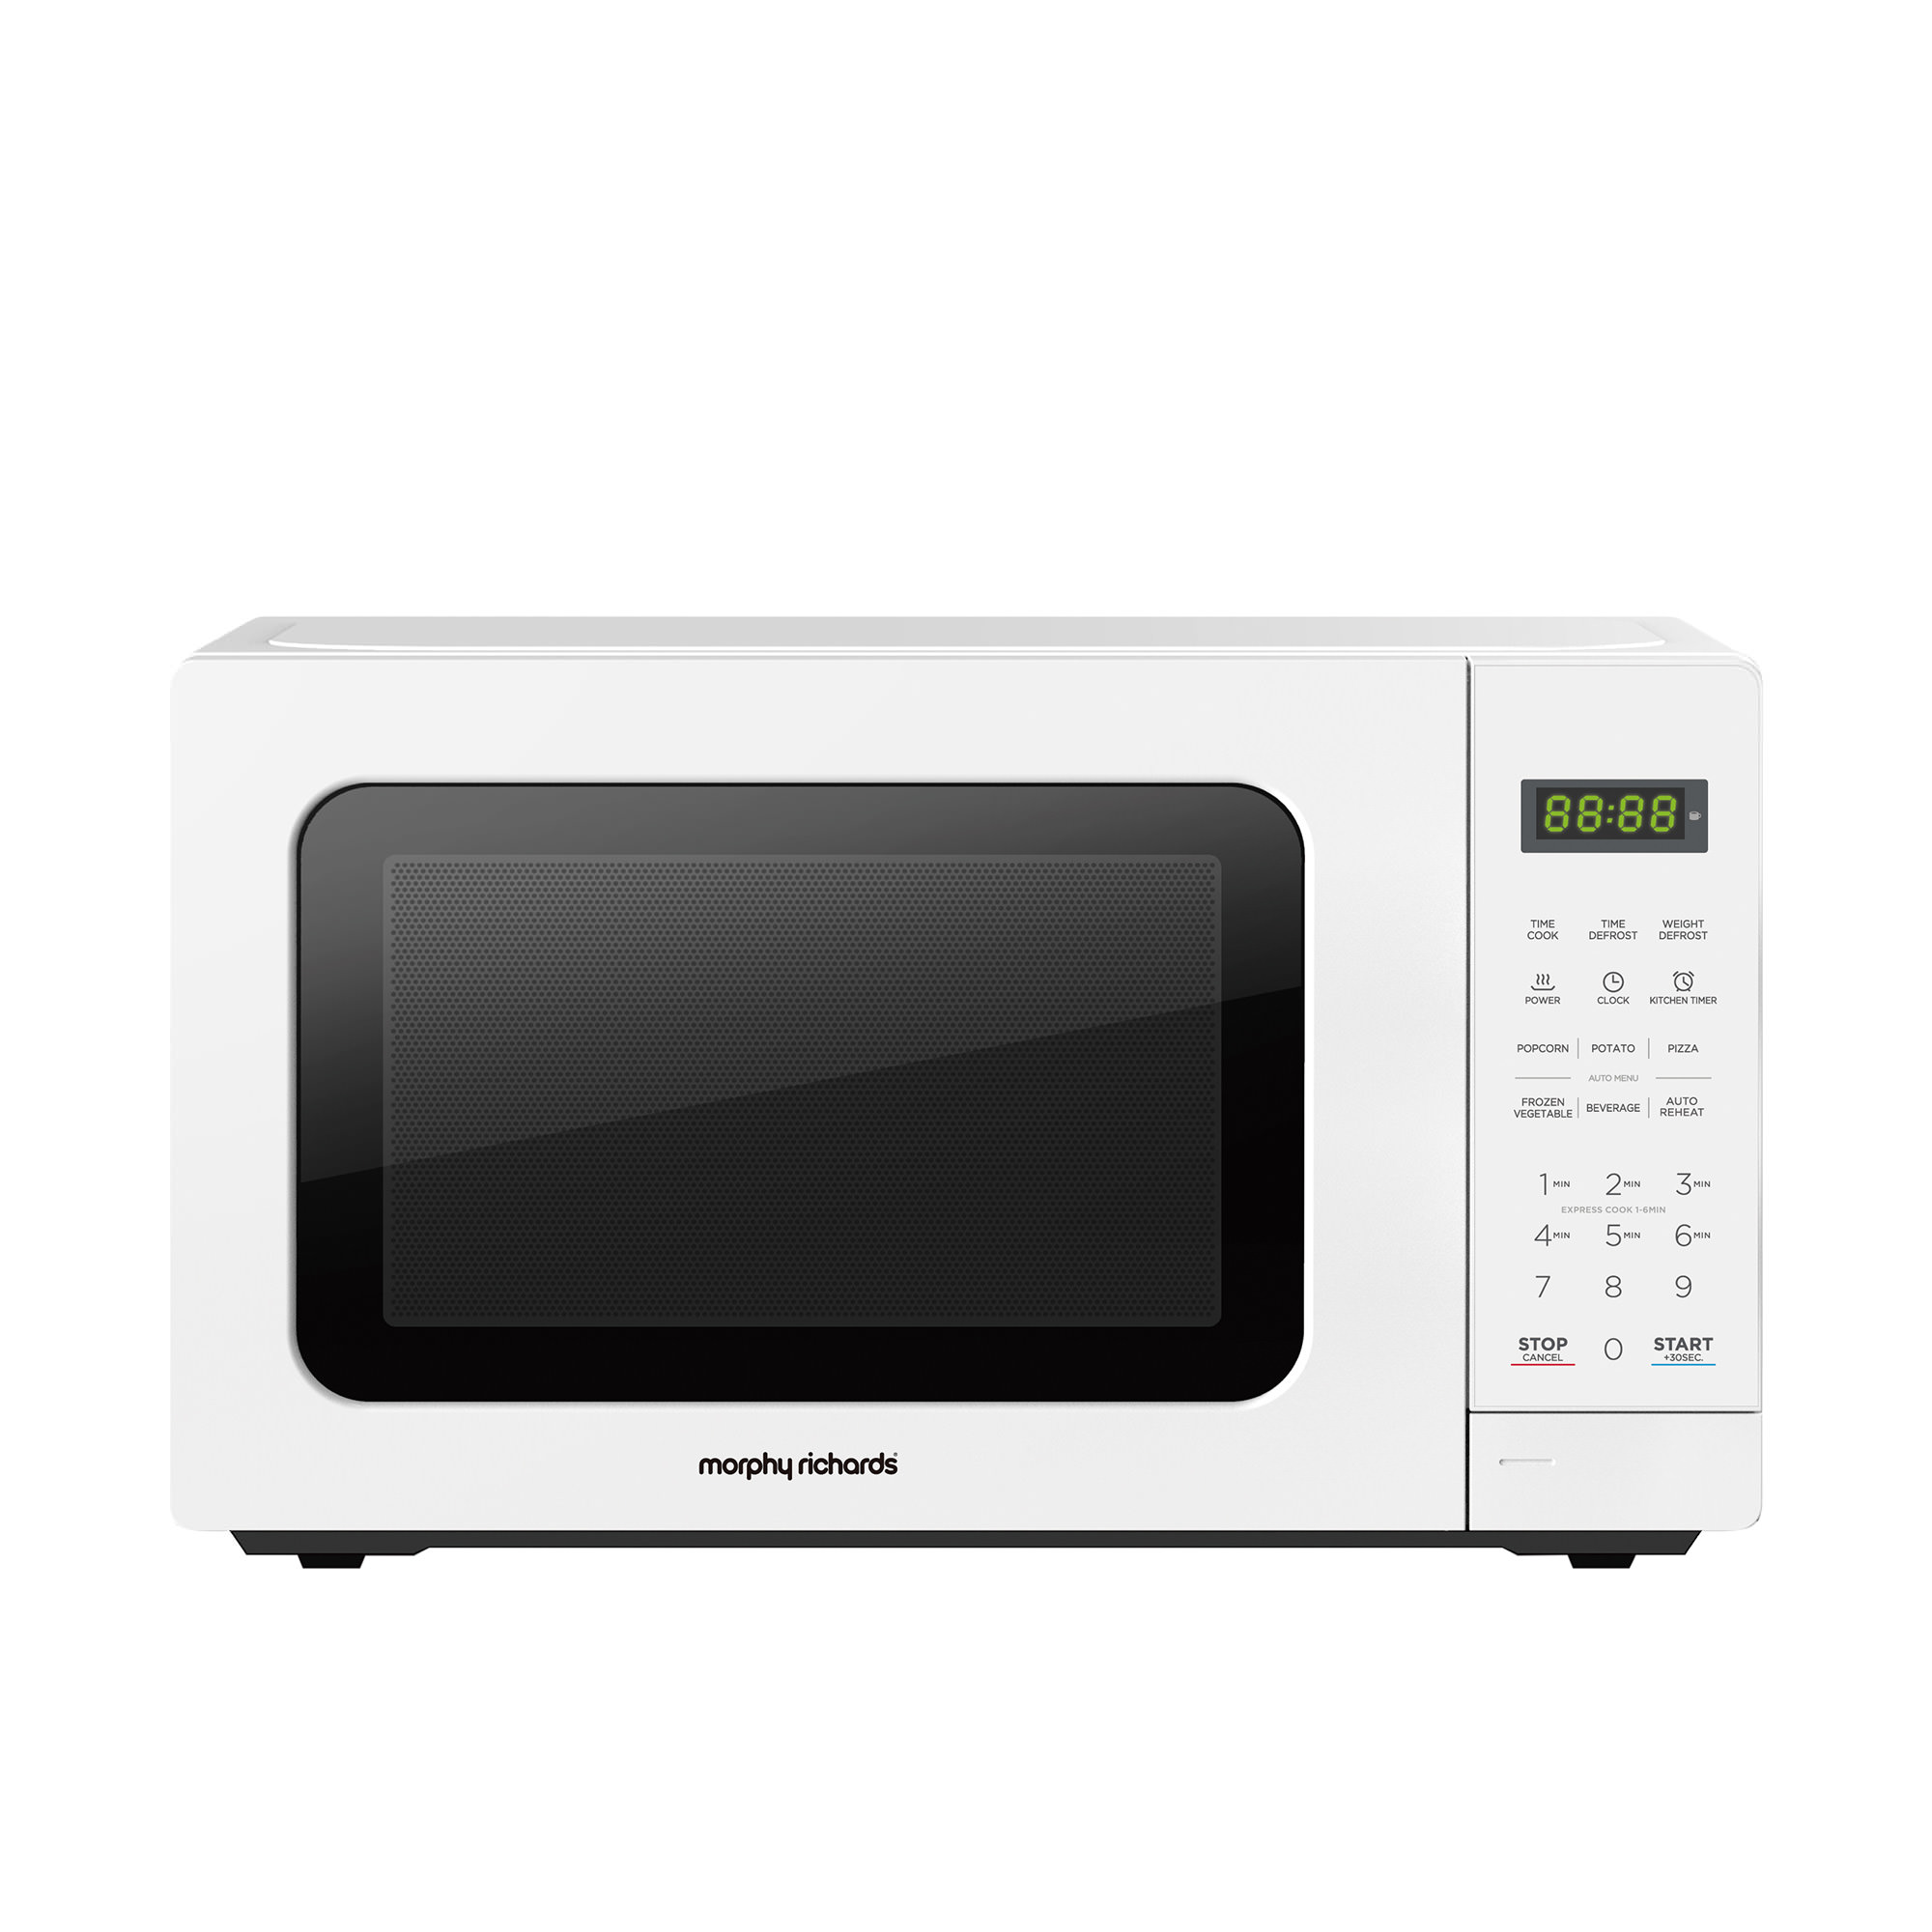 Morphy Richards Microwave Oven 20L